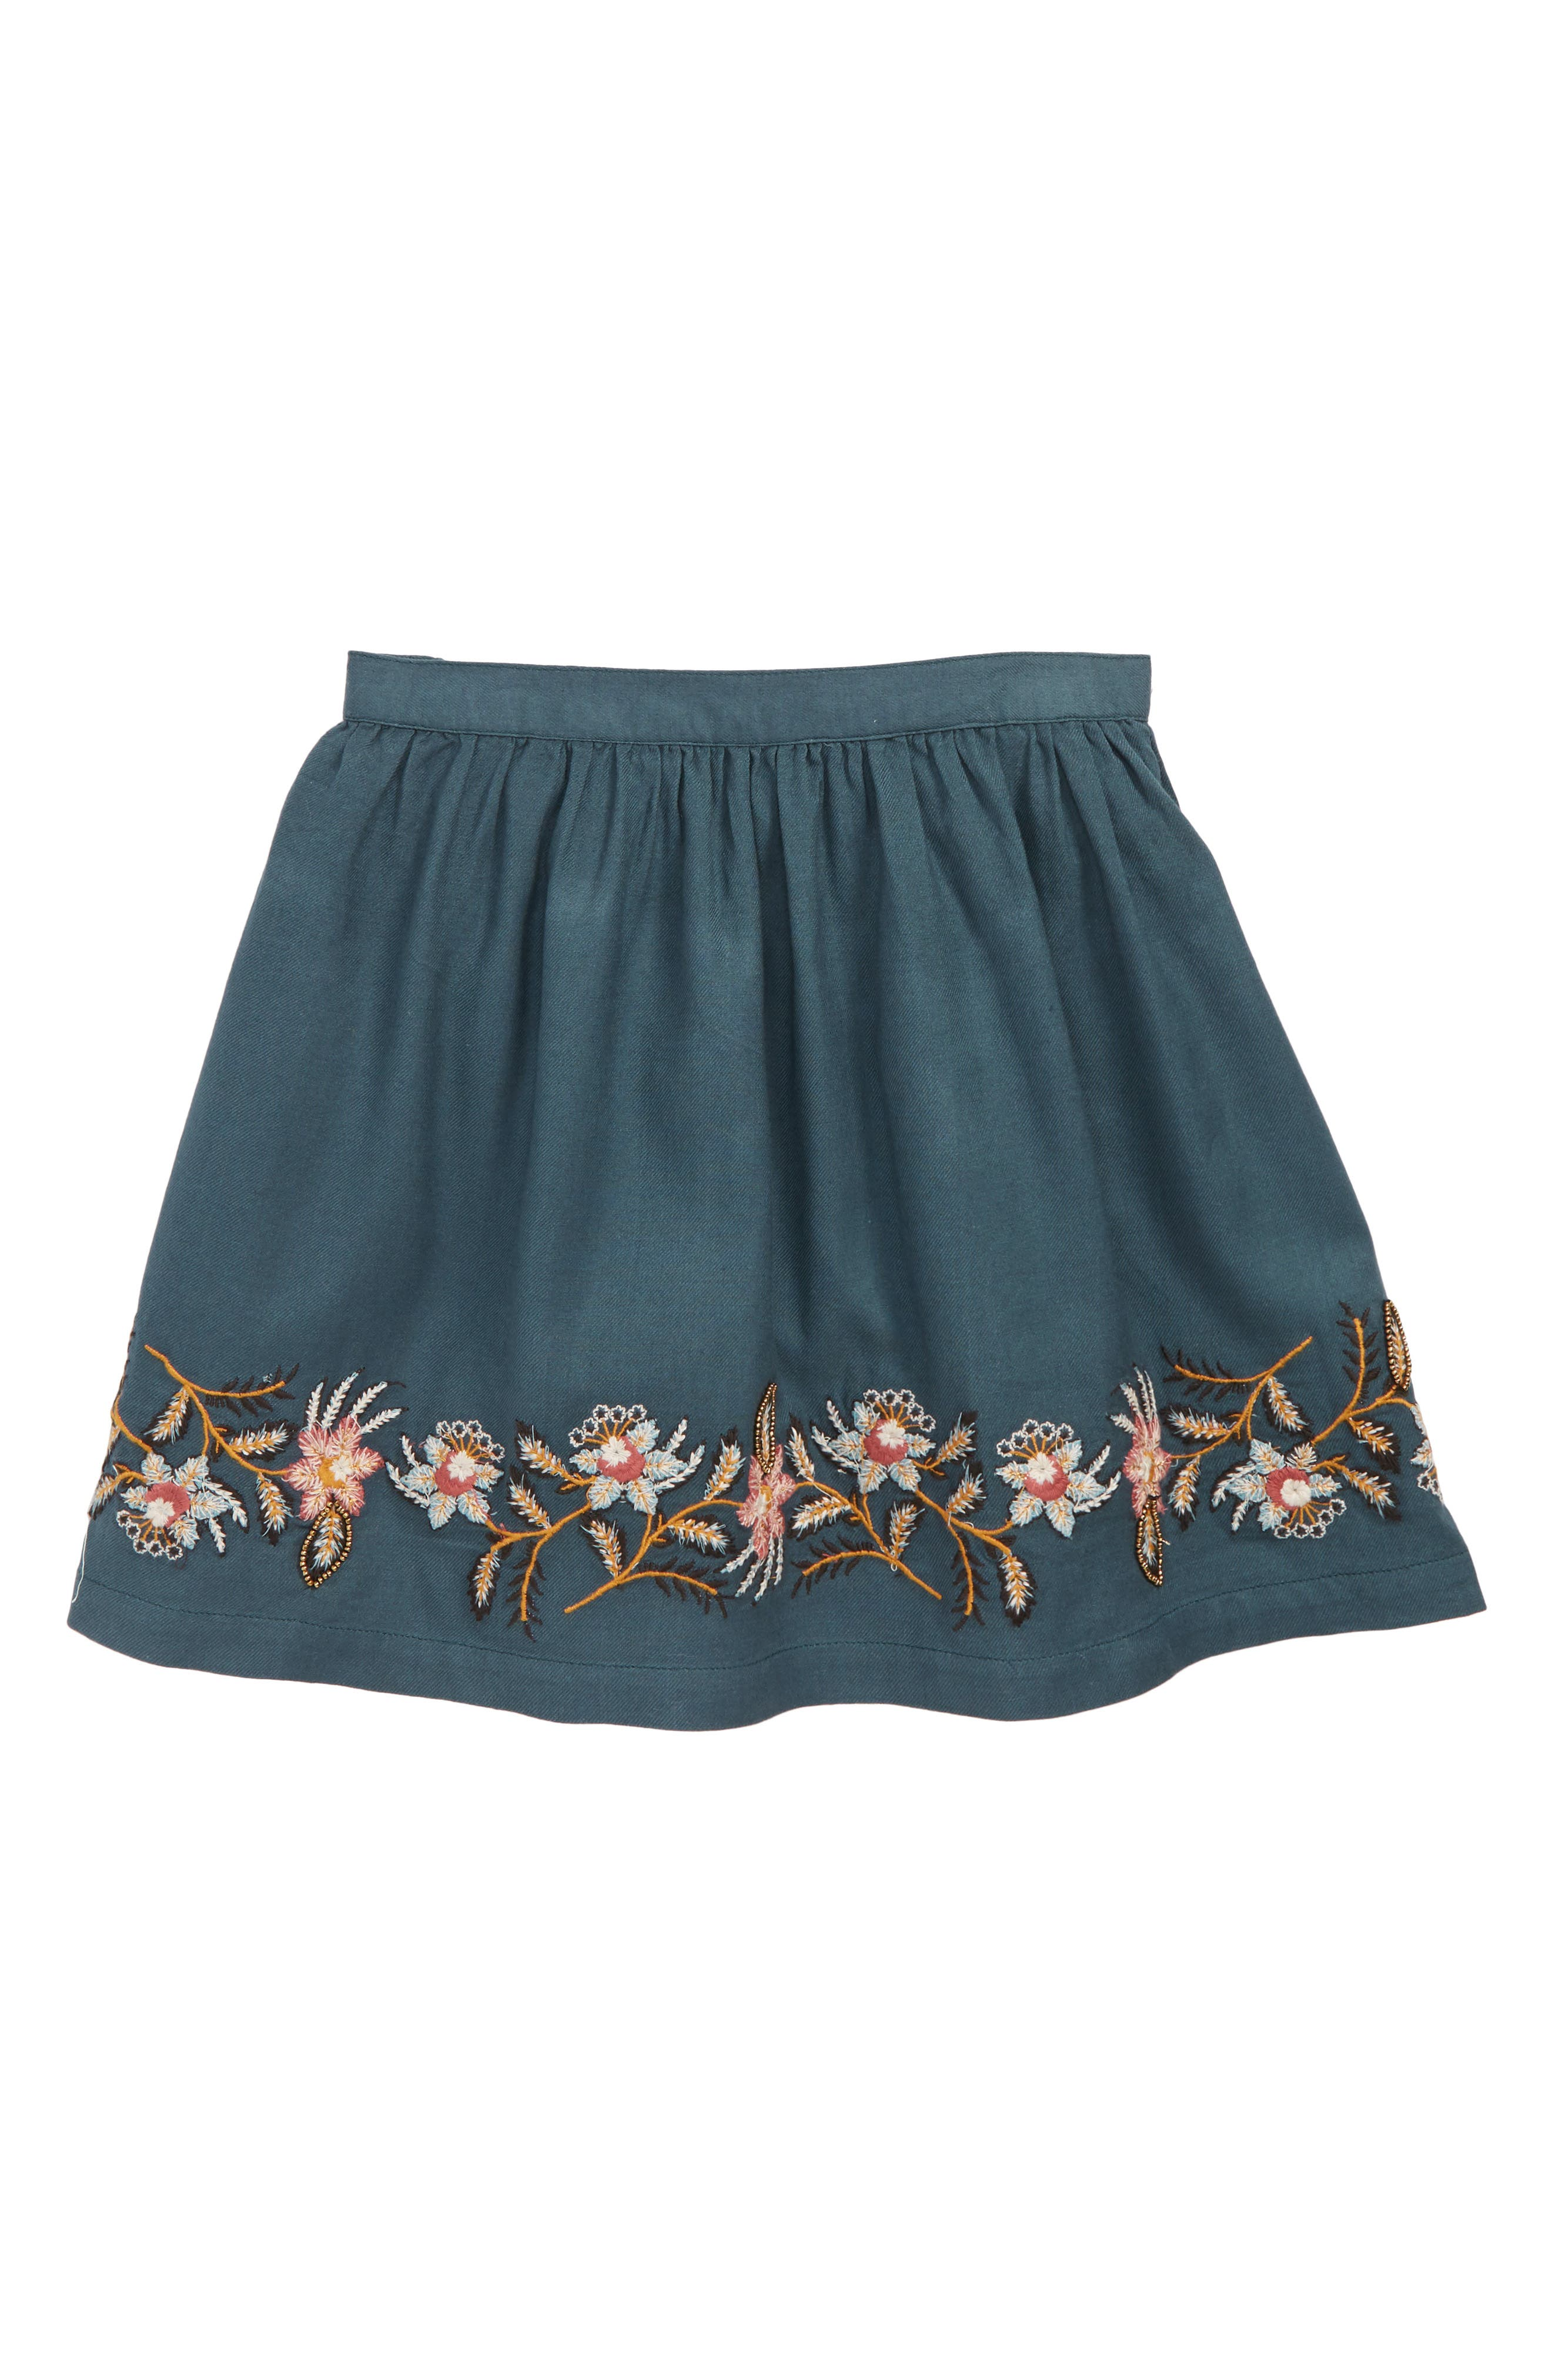 Peek Embroidered Skirt,                         Main,                         color, 307